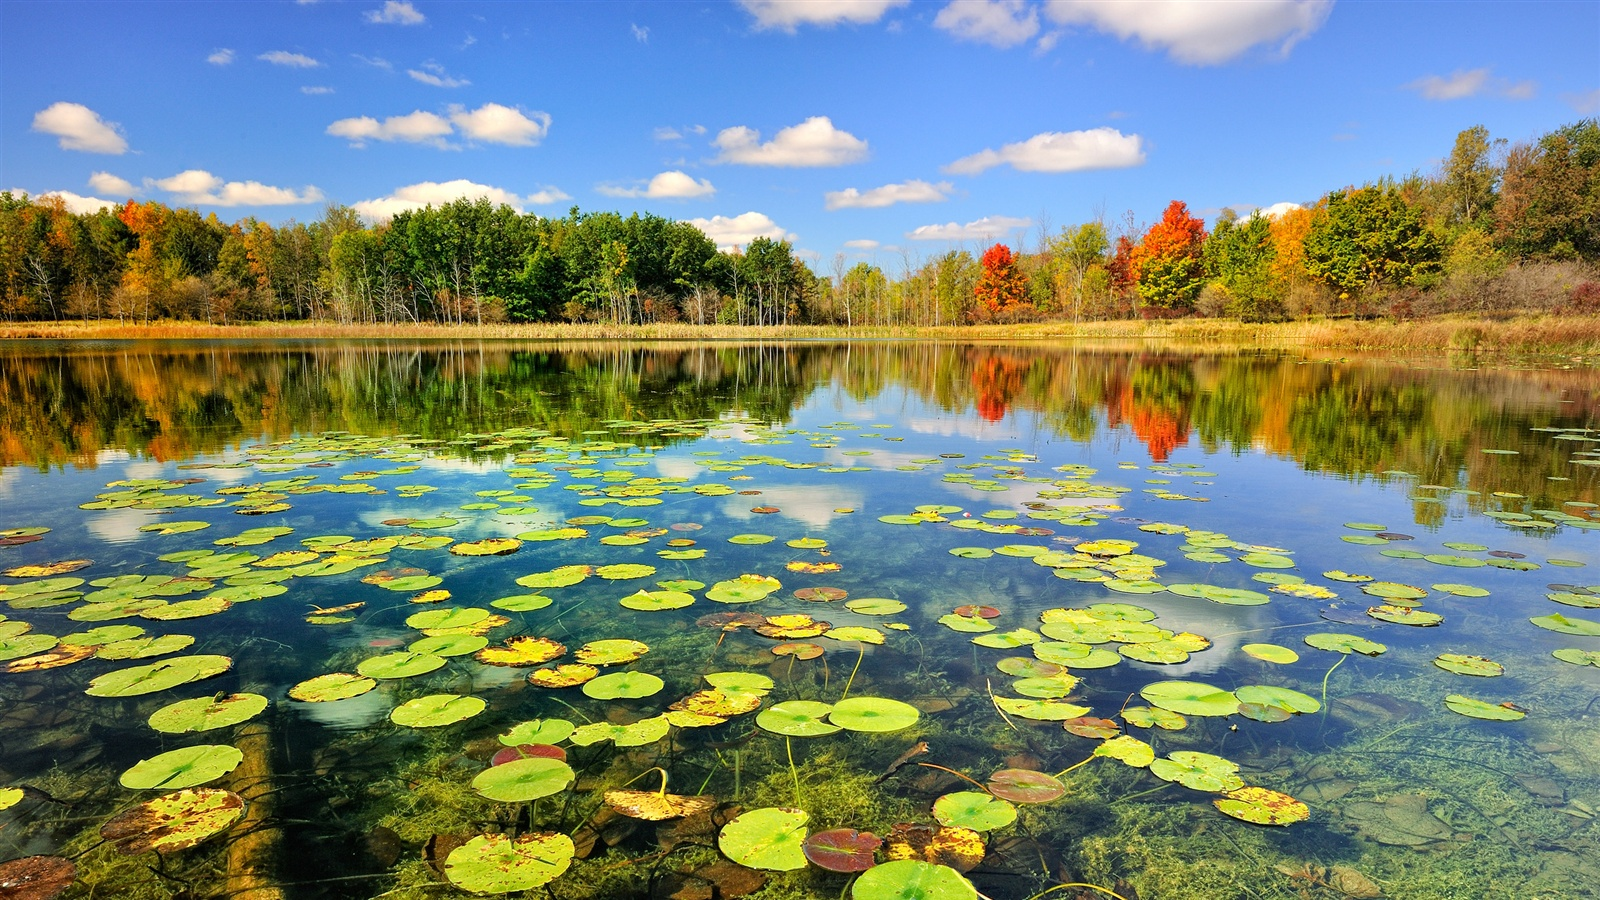 Wallpaper Nature Autumn Forest Lake 2560x1600 Hd Picture Image